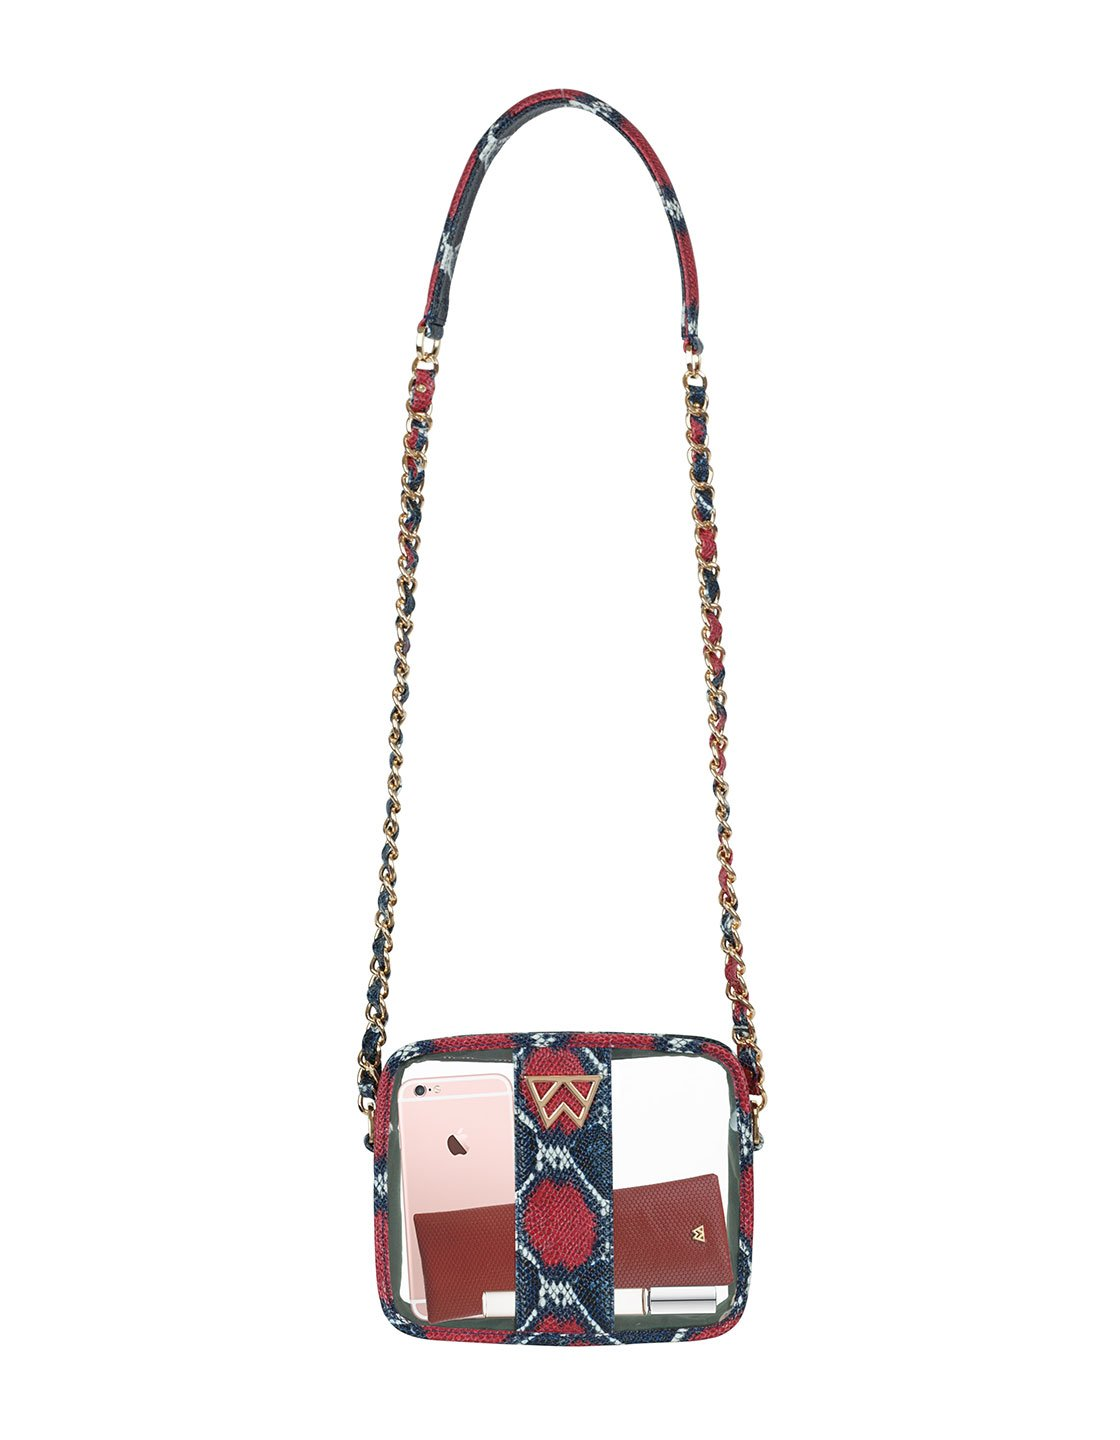 Clear Mingle Mingle Mini in Red/Navy Multi Python